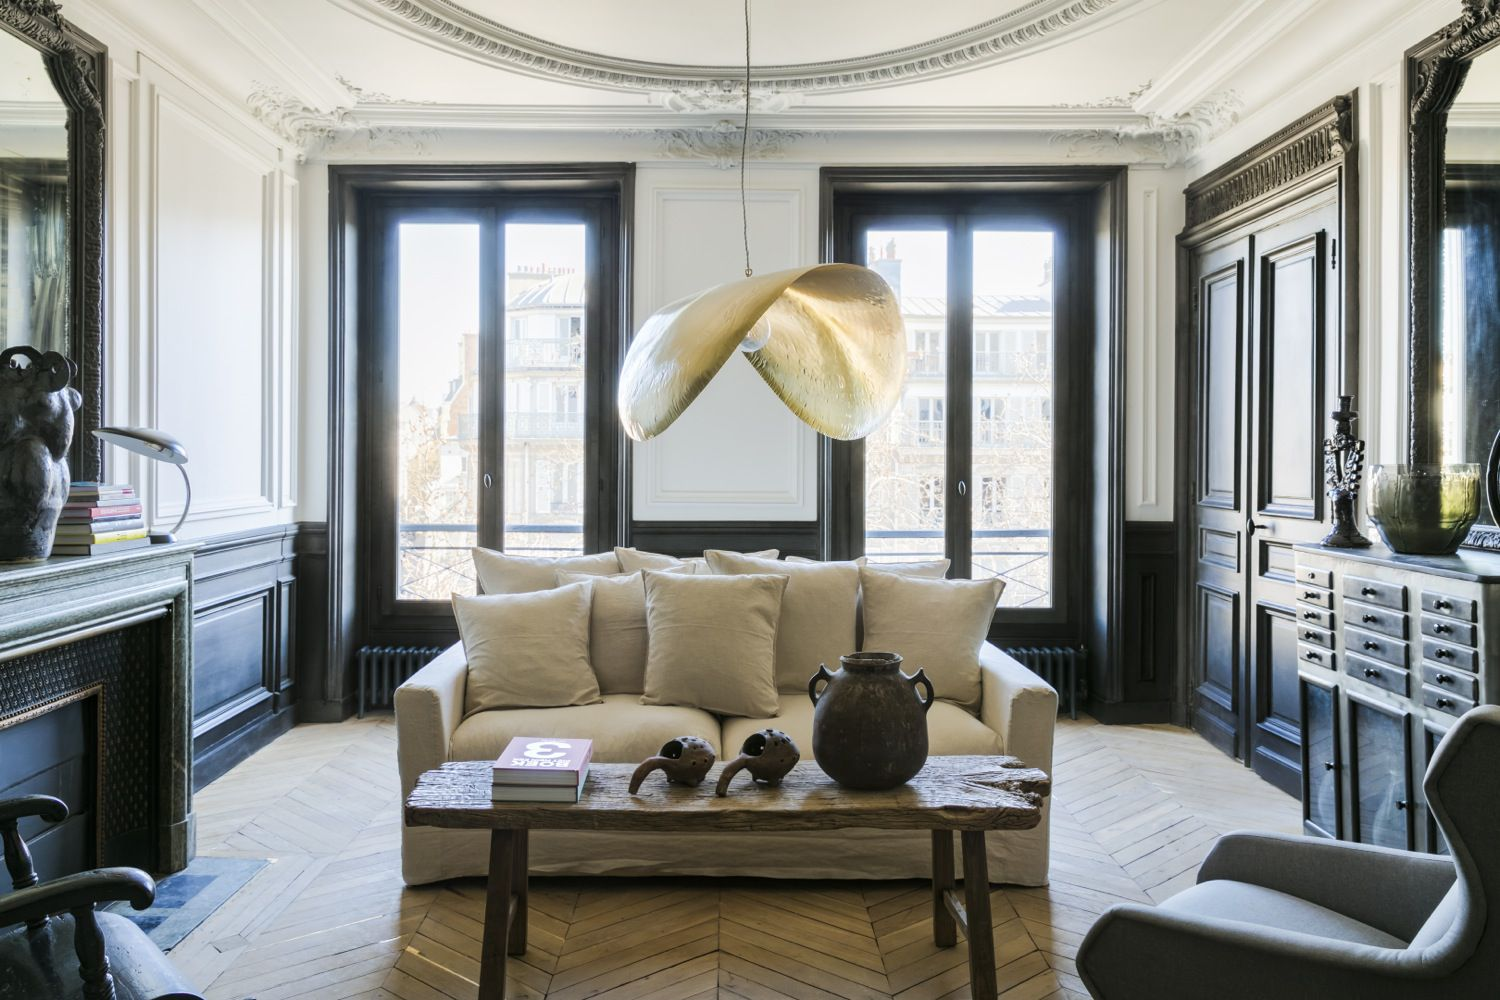 Decorate Your Home Like A Parisian With These Key Design Principles